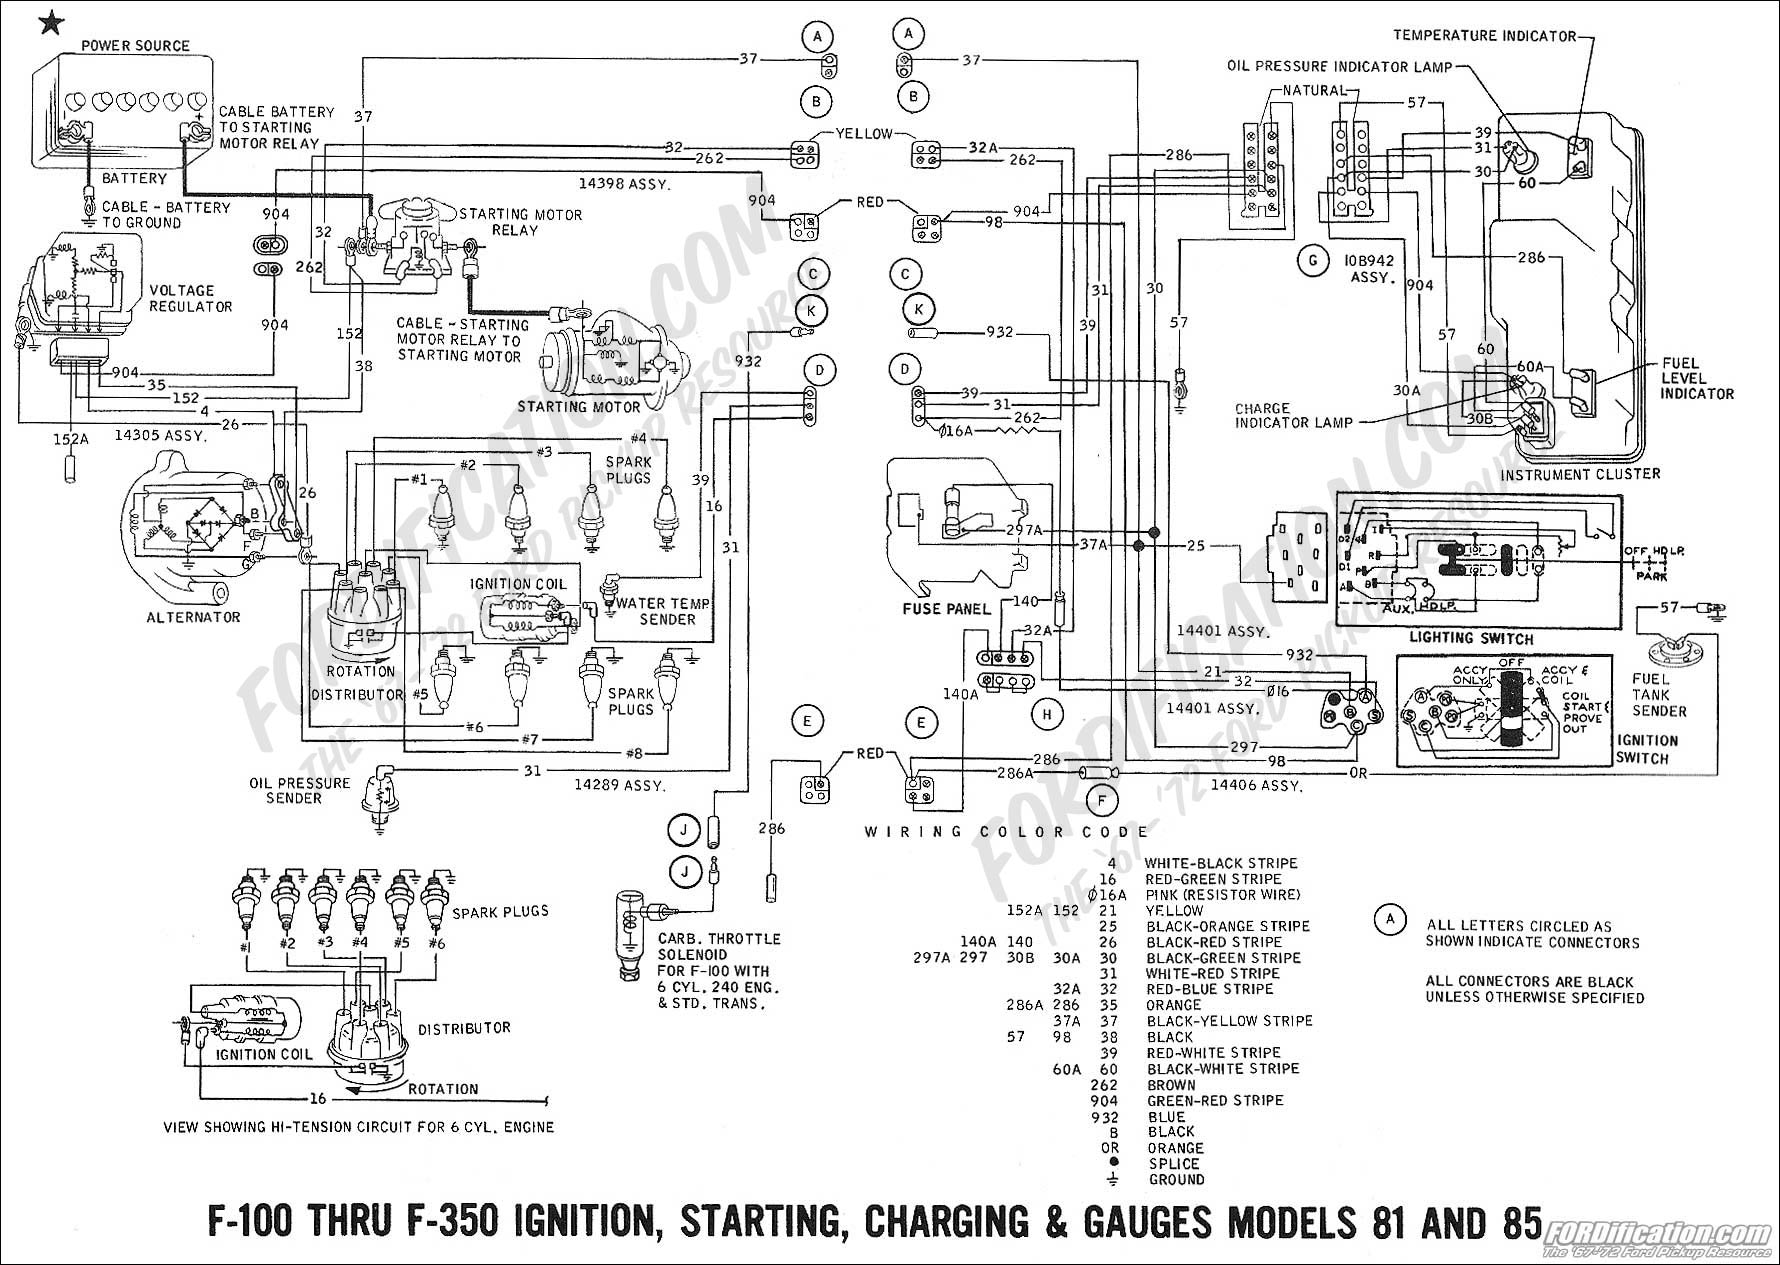 Terrific Ford Thunderbird Wiring Diagram 1956 Ford Truck Wiring Diagram Wiring Cloud Onicaalyptbenolwigegmohammedshrineorg